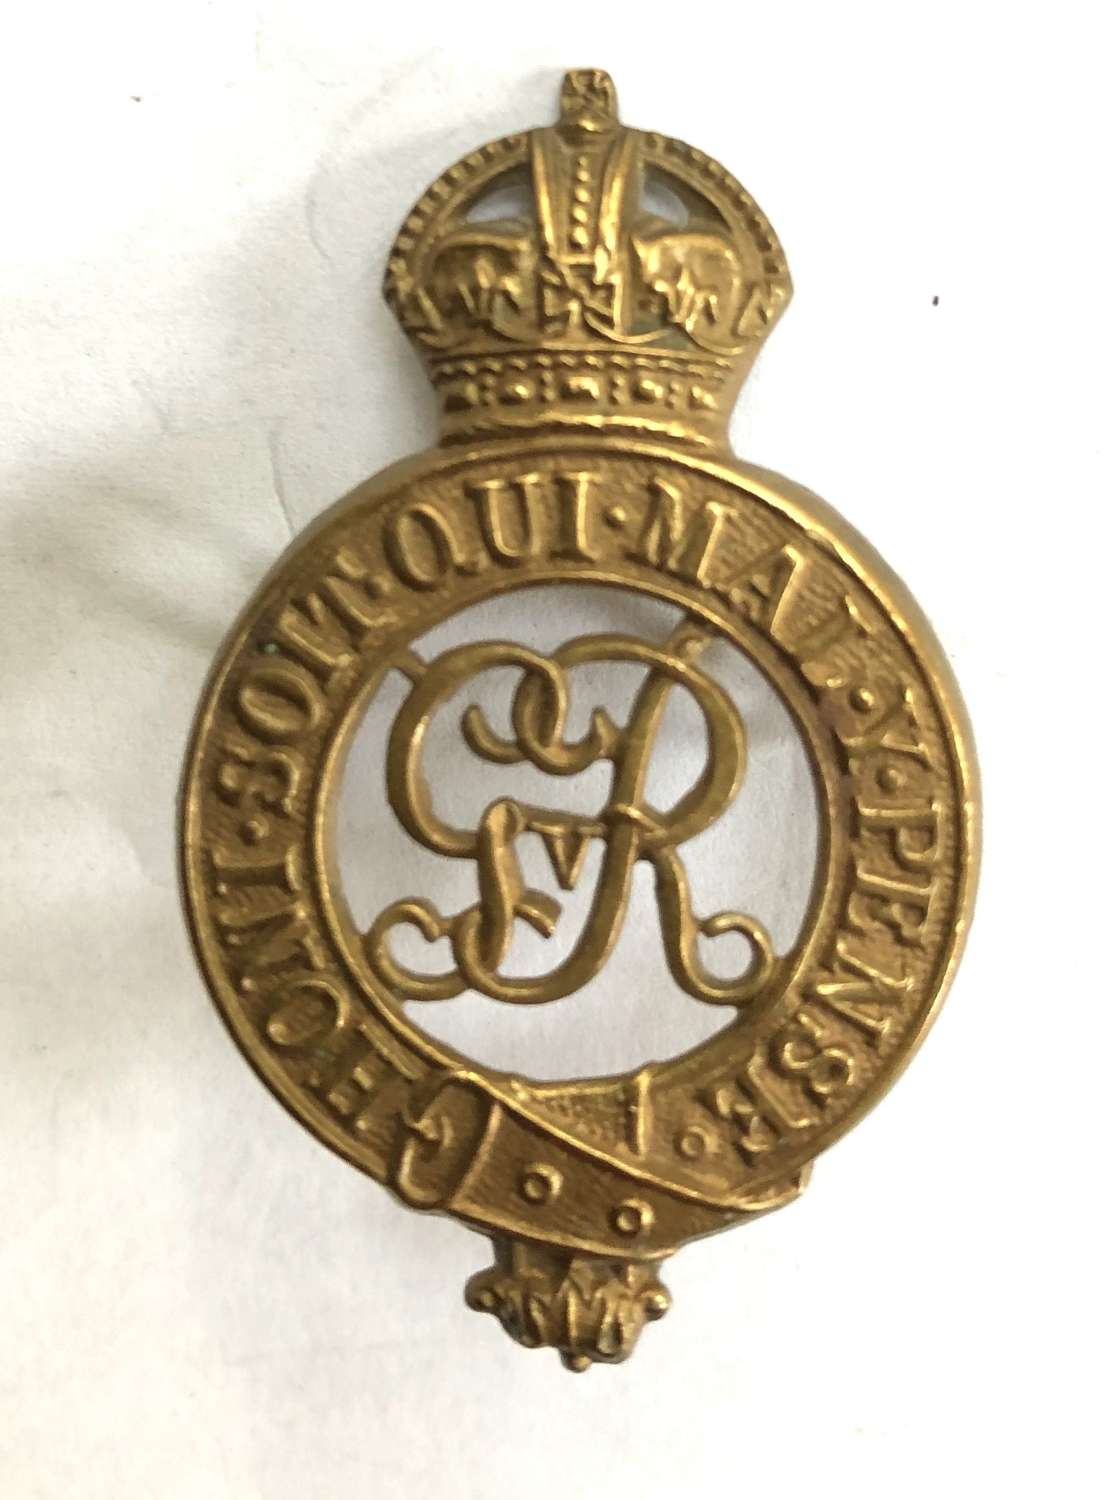 Household Cavalry GvR scarce OR's cap badge.